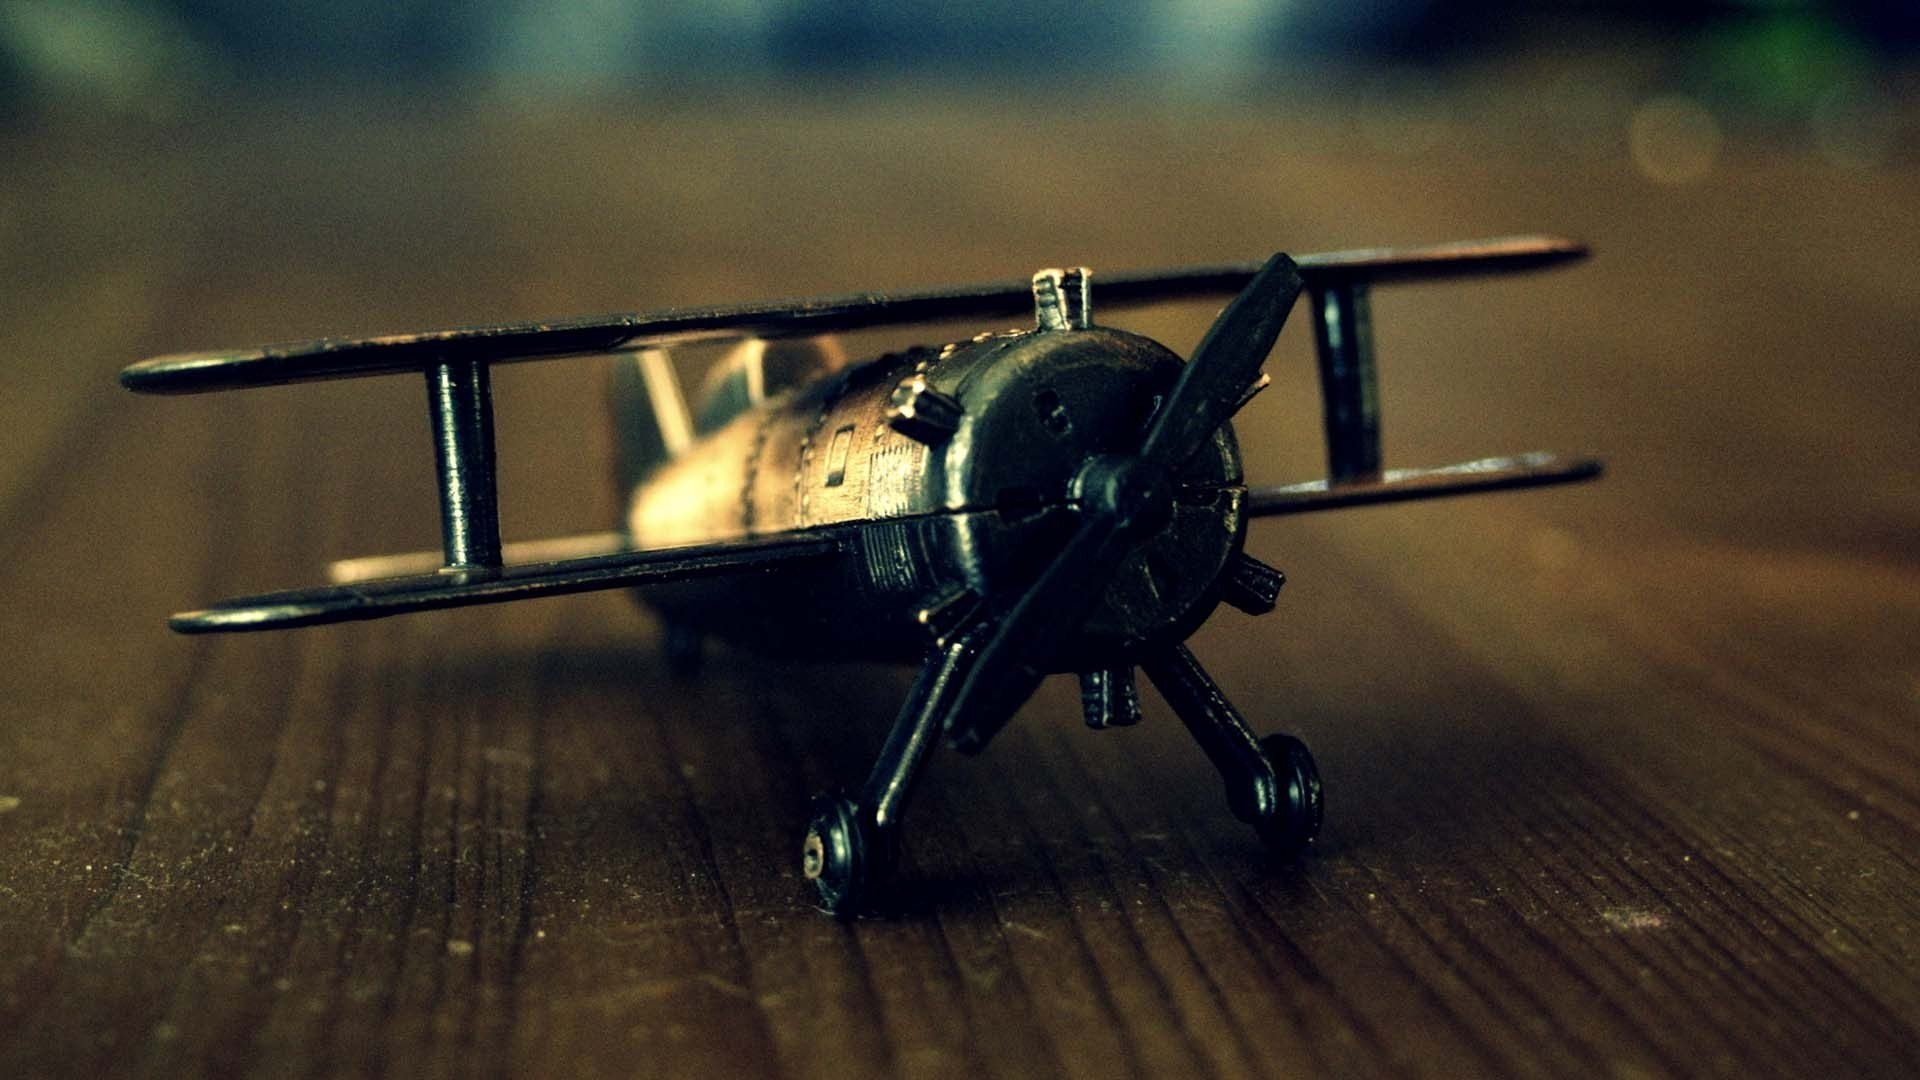 Imghdnet Provide Top Vintage Airplane Wallpapers in different size 1920x1080